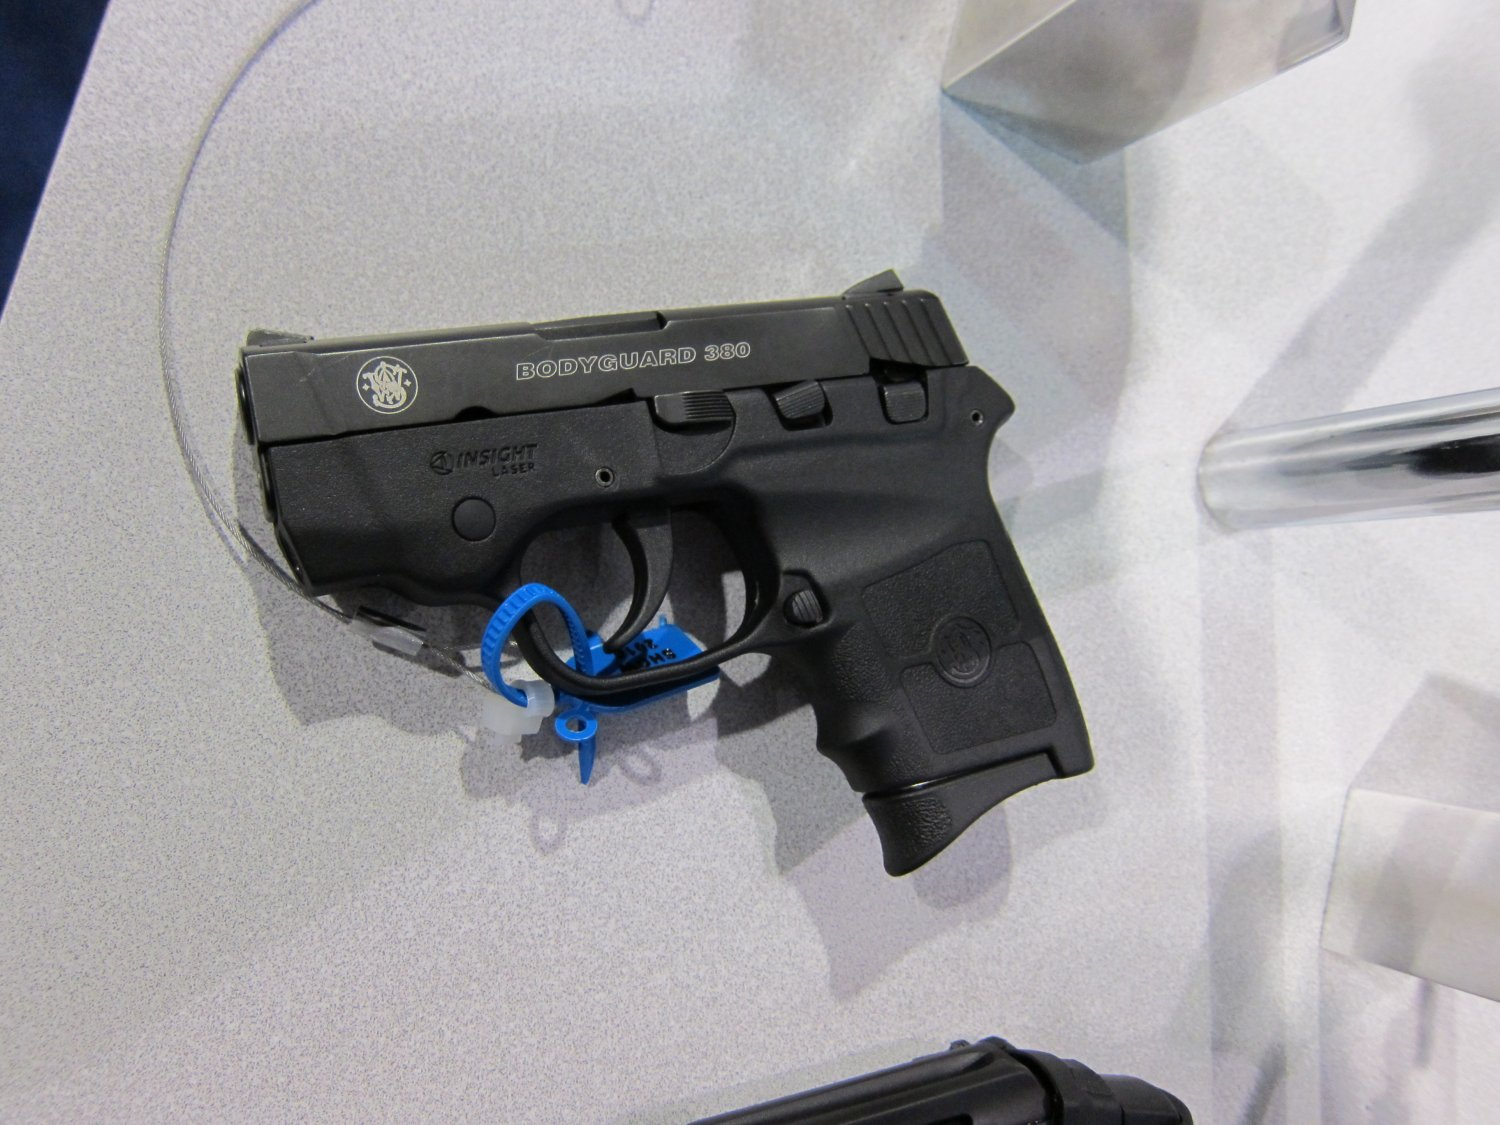 SHOT Show 2010 Smith  Wesson Bodyguard .38 Special Revolver and .380 Pistol 4 Smith & Wesson (S&W) Bodyguard 380 Lightweight Sub Compact .380 ACP Pistol with L3 Insight Technology Laser Sight for Civilian Concealed Carry (CCW) and Law Enforcement Officer (LEO) Back Up Use